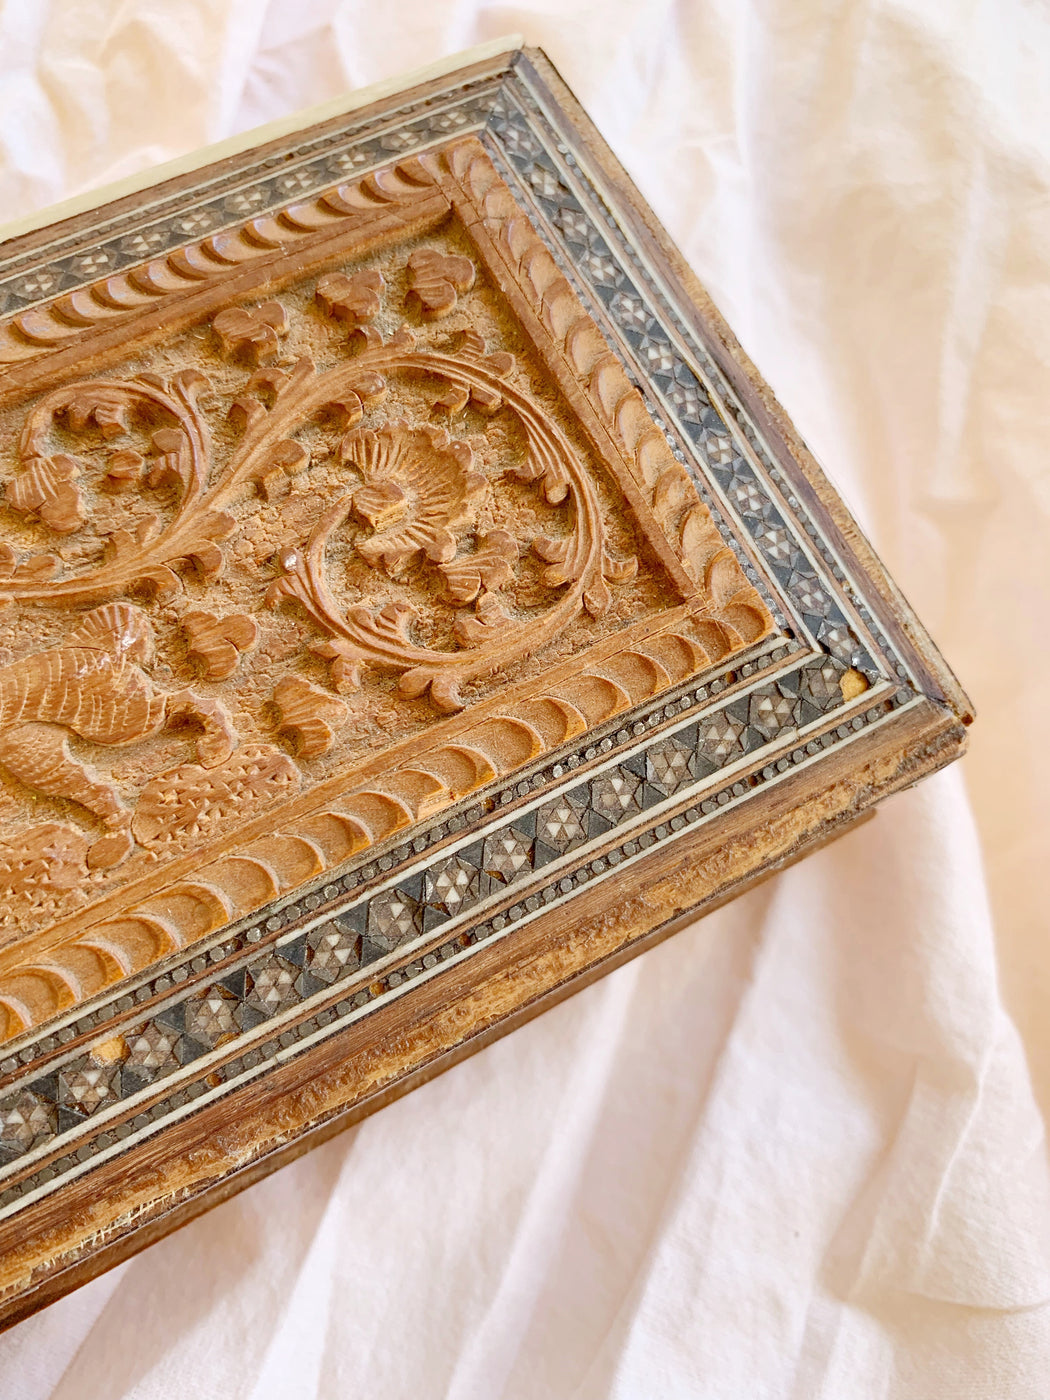 Indian Hand-Carved Wooden Box